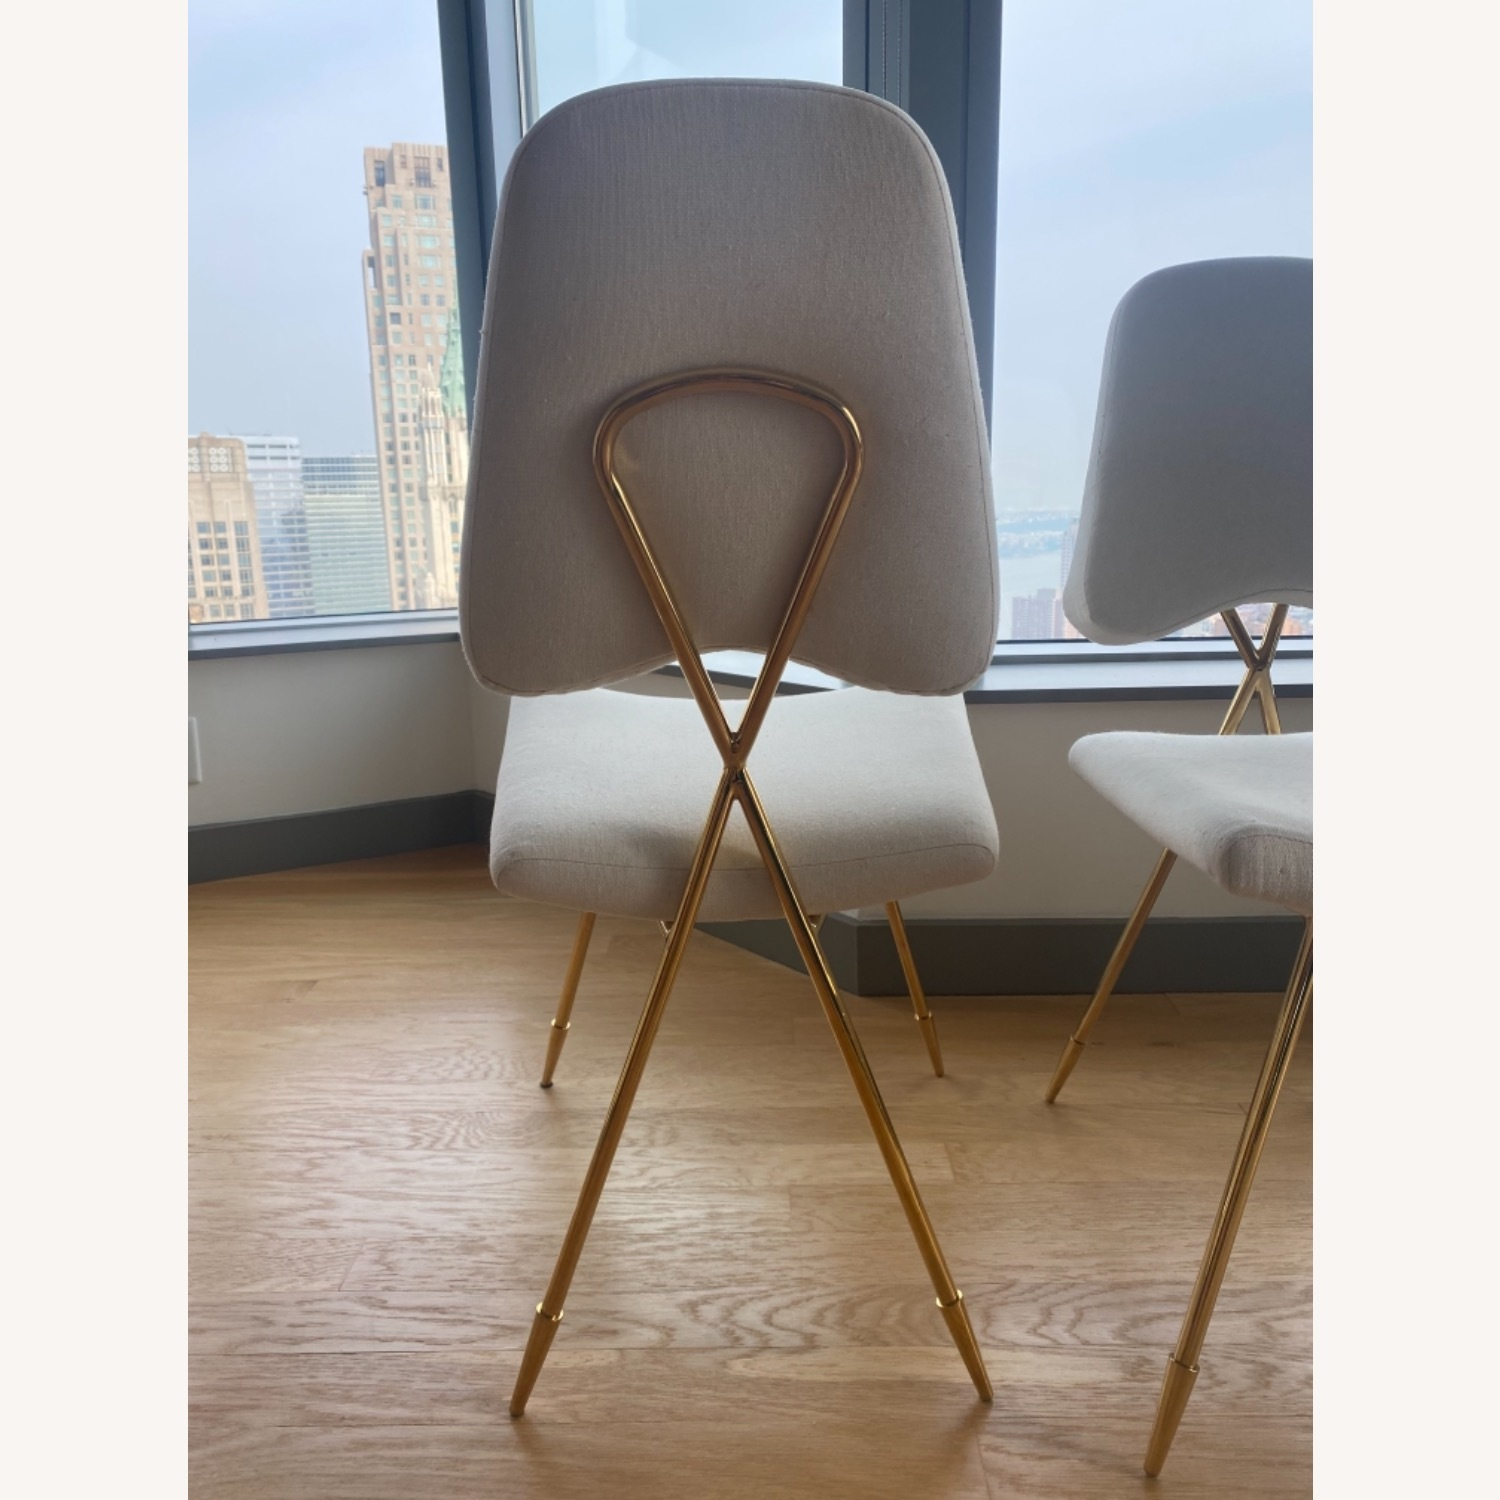 Jonathan Adler Maxime Dining Chairs - image-3